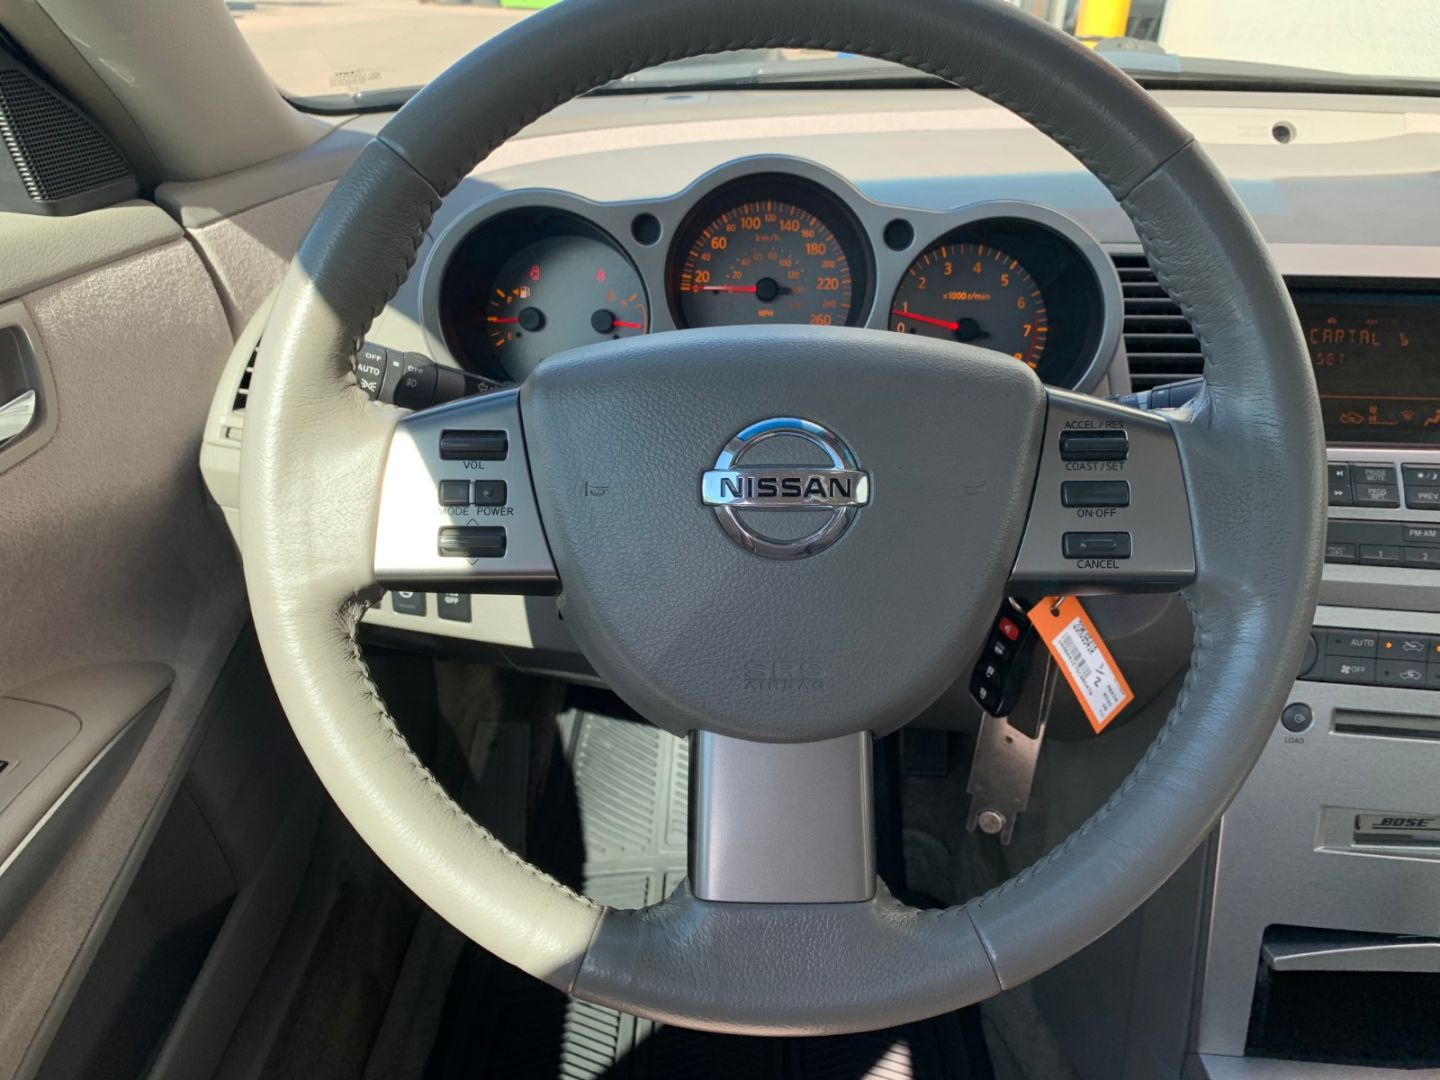 2005 Nissan Maxima 3.5 SE for sale in Edmonton, Alberta